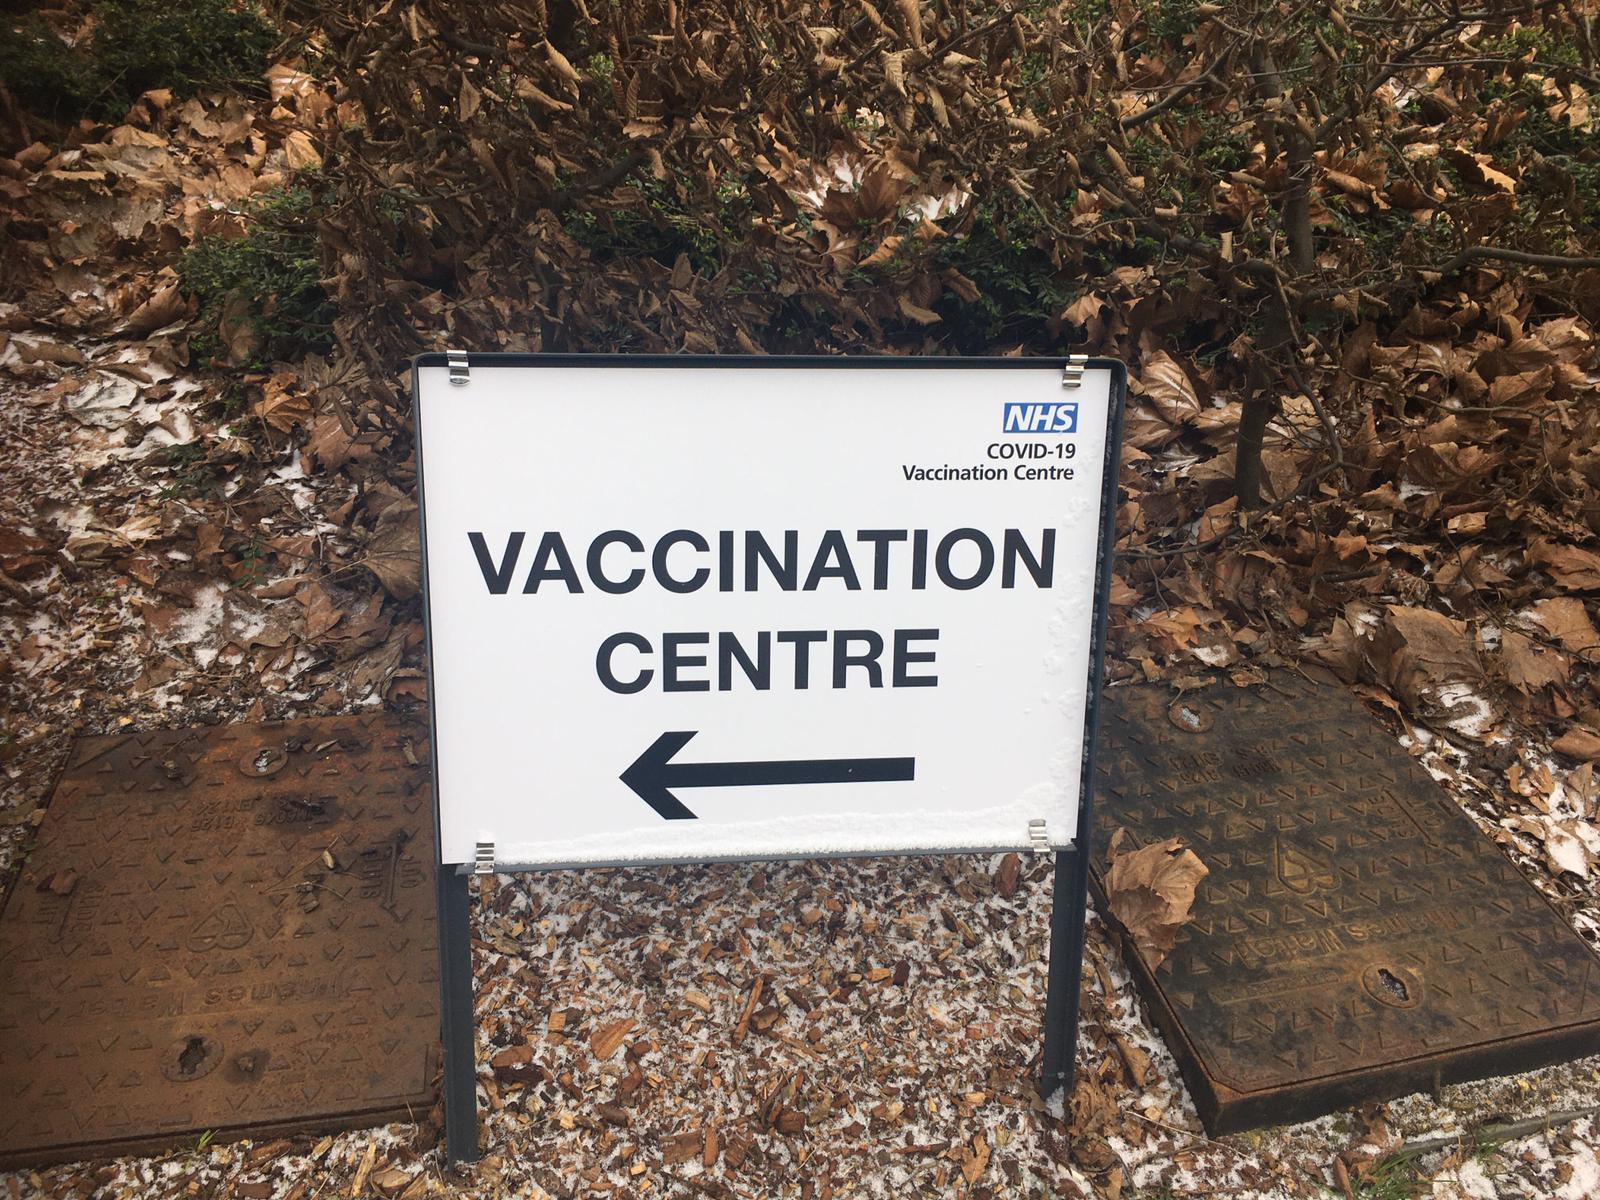 The vaccination centre at Aylesburys BNU campus opened on Feb 8